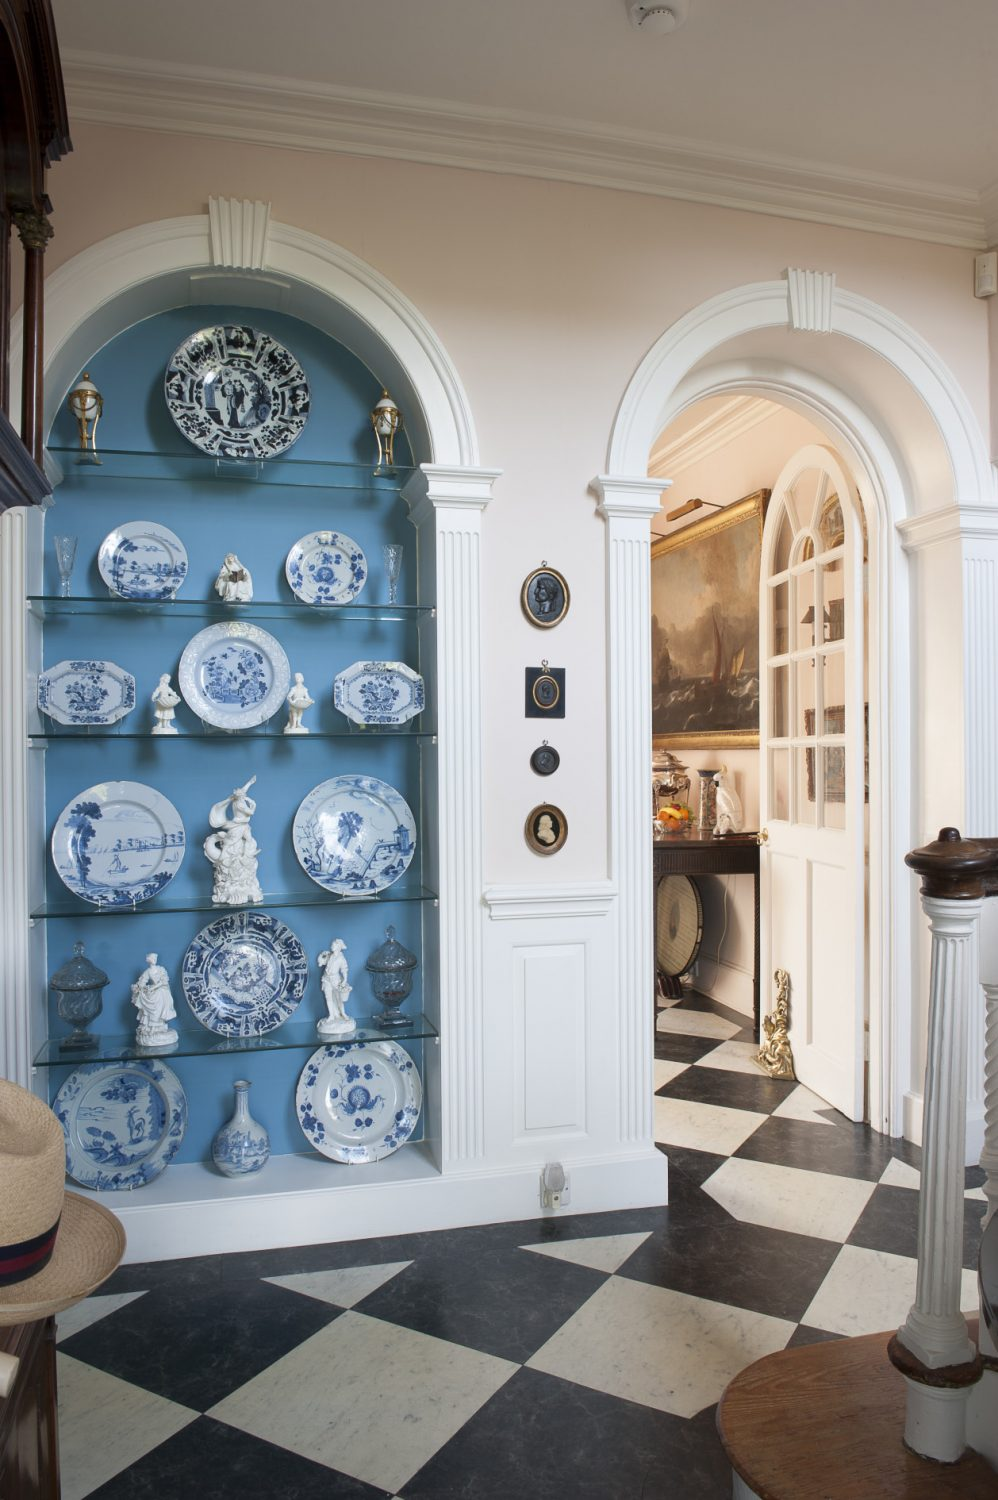 A collection of 18th century English Delft plates is framed by a blue alcove